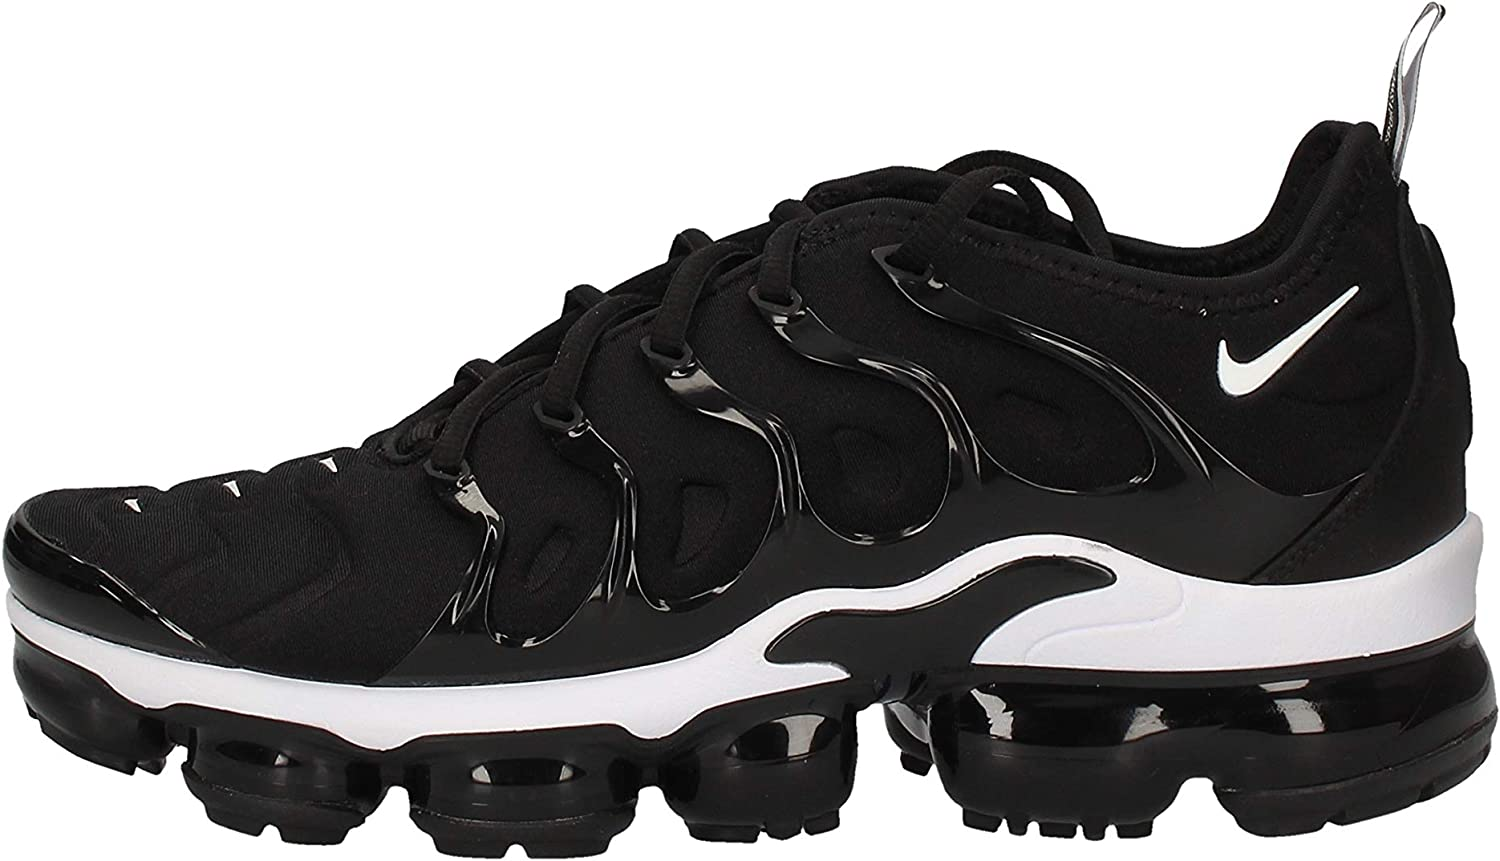 Nike AIR Vapormax Plus  924453011 Black, White